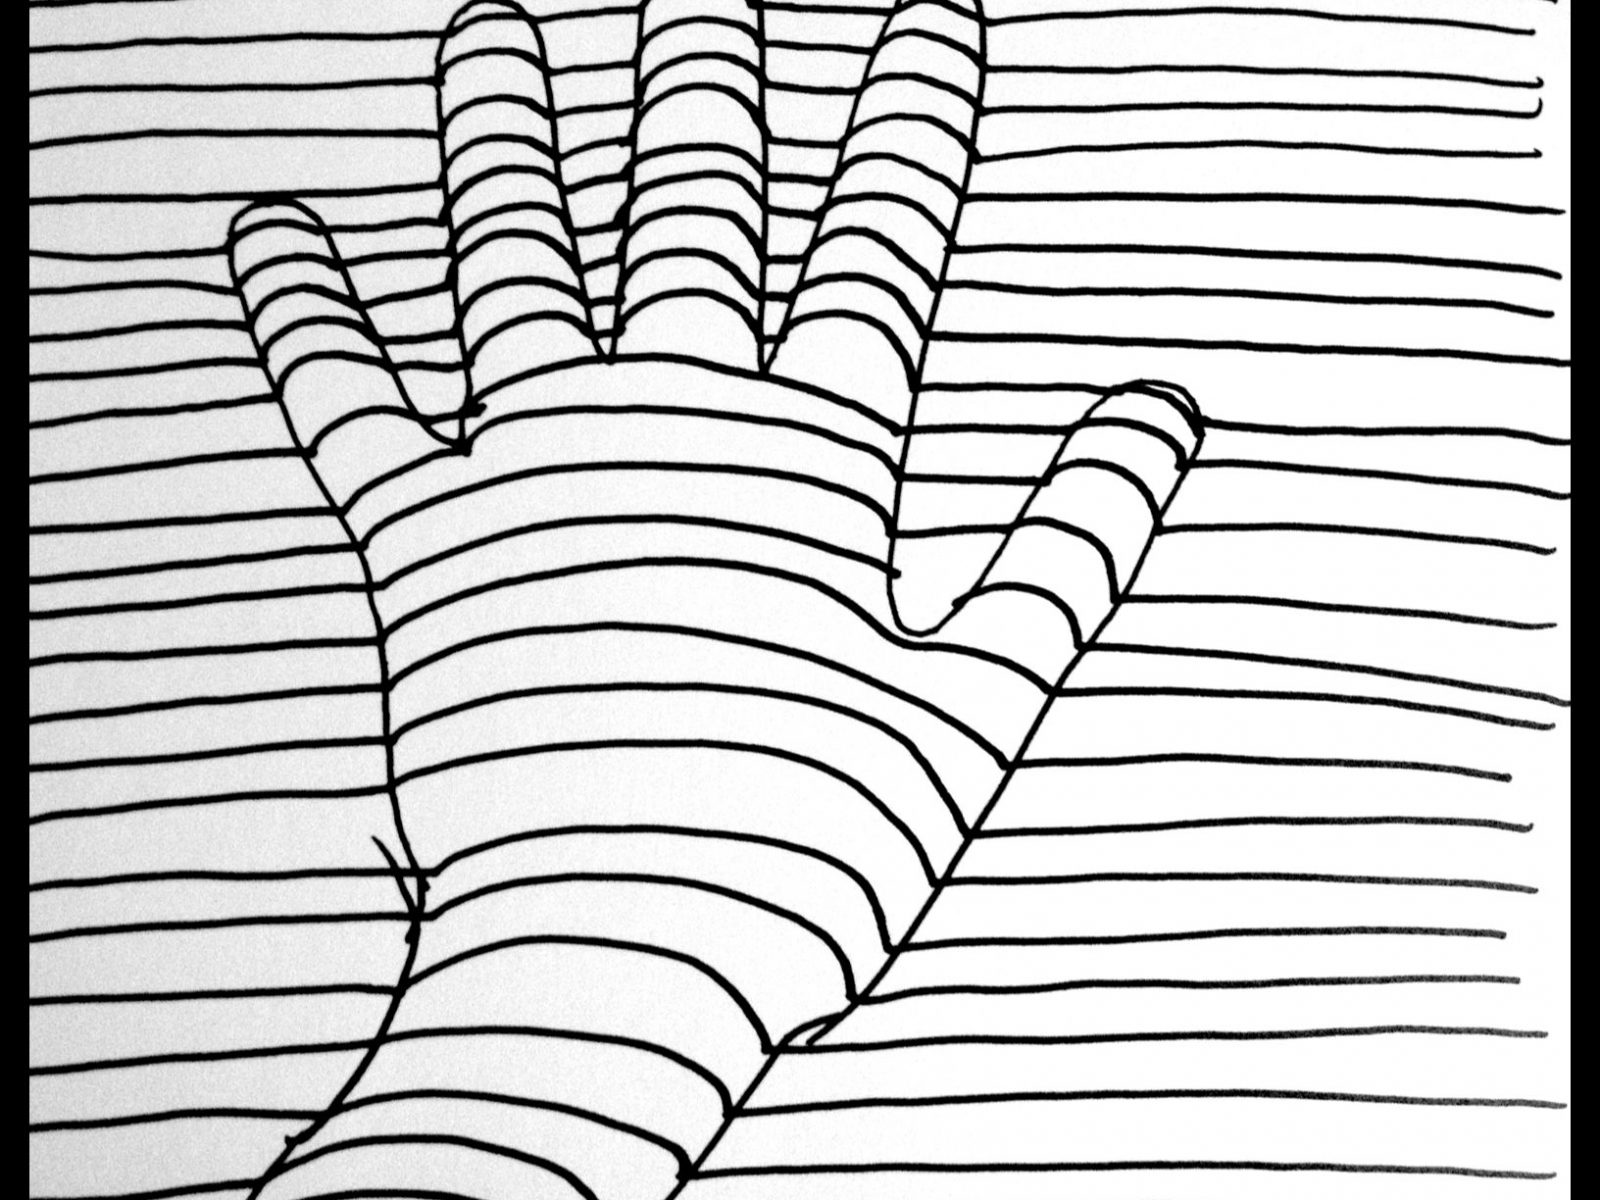 Optical illusions drawing at free for for Animated optical illusions template